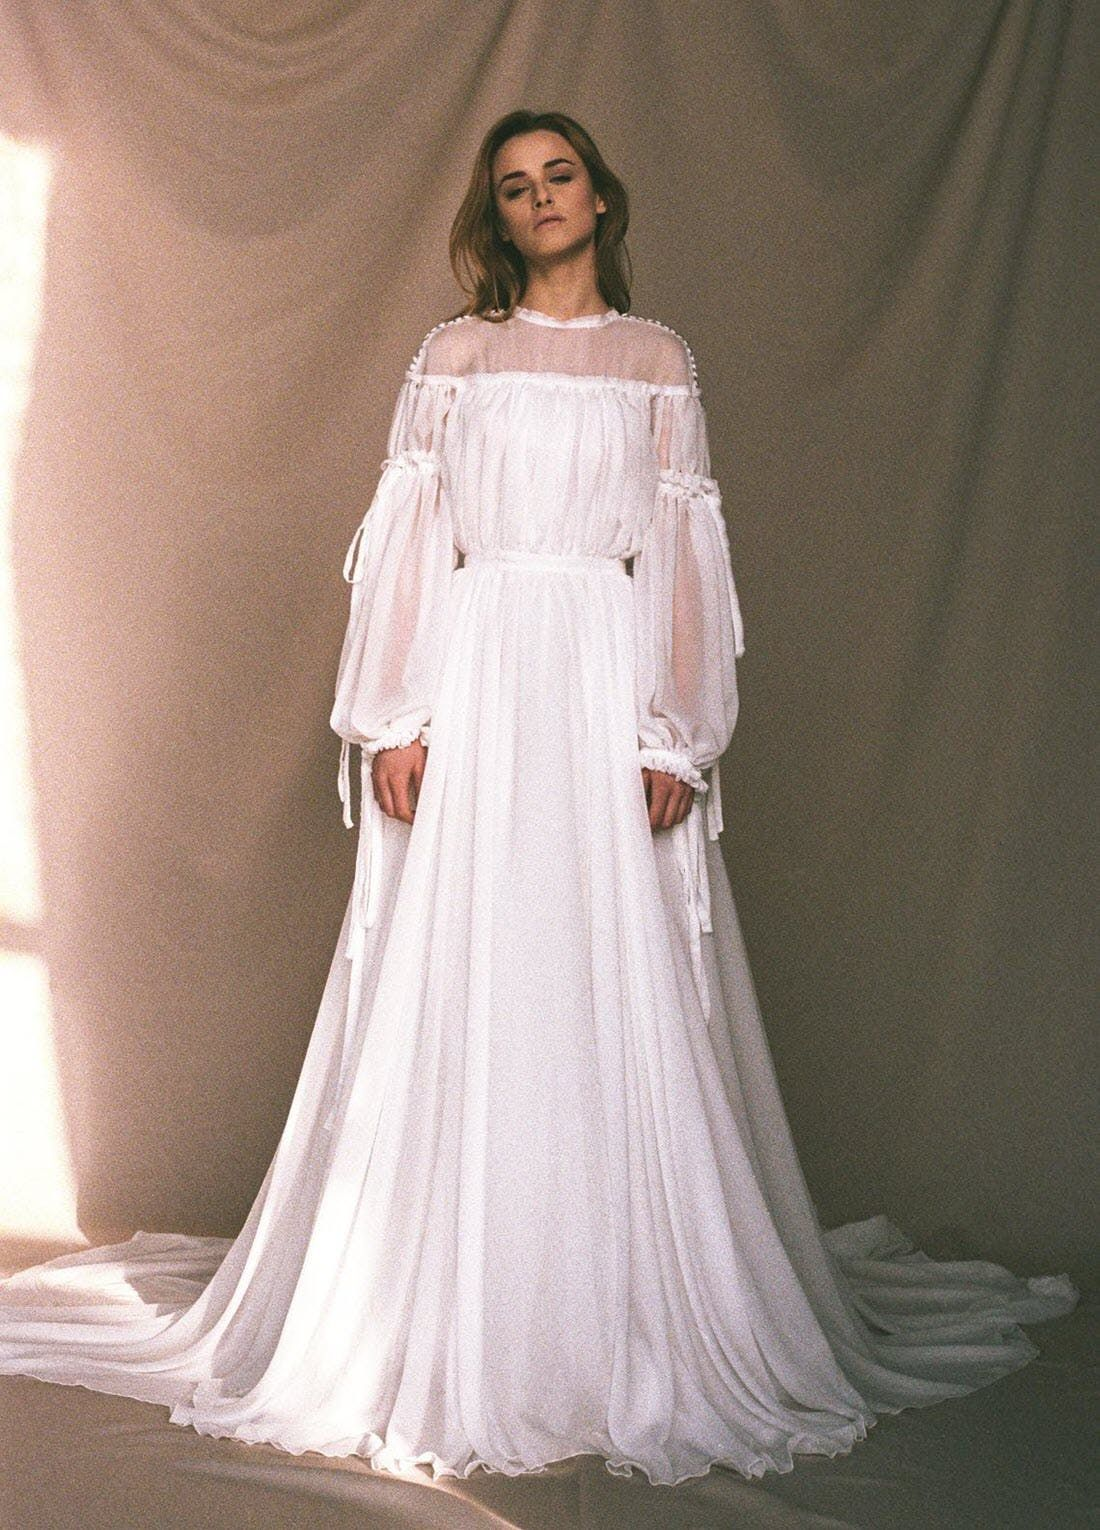 14 Affordable Statement Sleeve Wedding Dresses For The 2019 Bride Nontraditional Wedding Dress Sleeve Wedding Dress Wedding Dress Brands